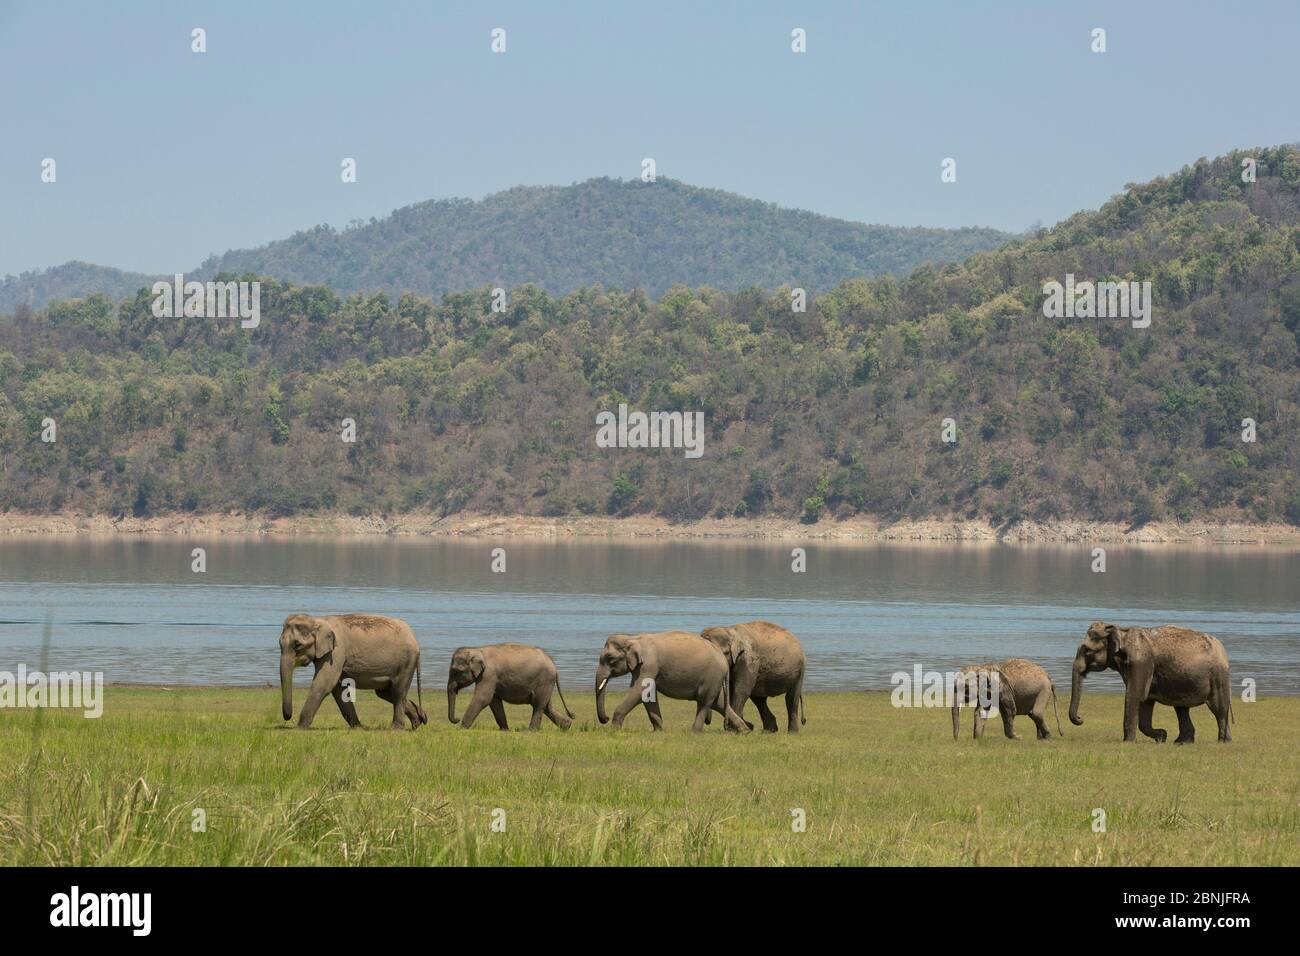 Asiatic elephant (Elephas maximus), herd approaching lake to drink water. Jim Corbett National Park, India. Stock Photo